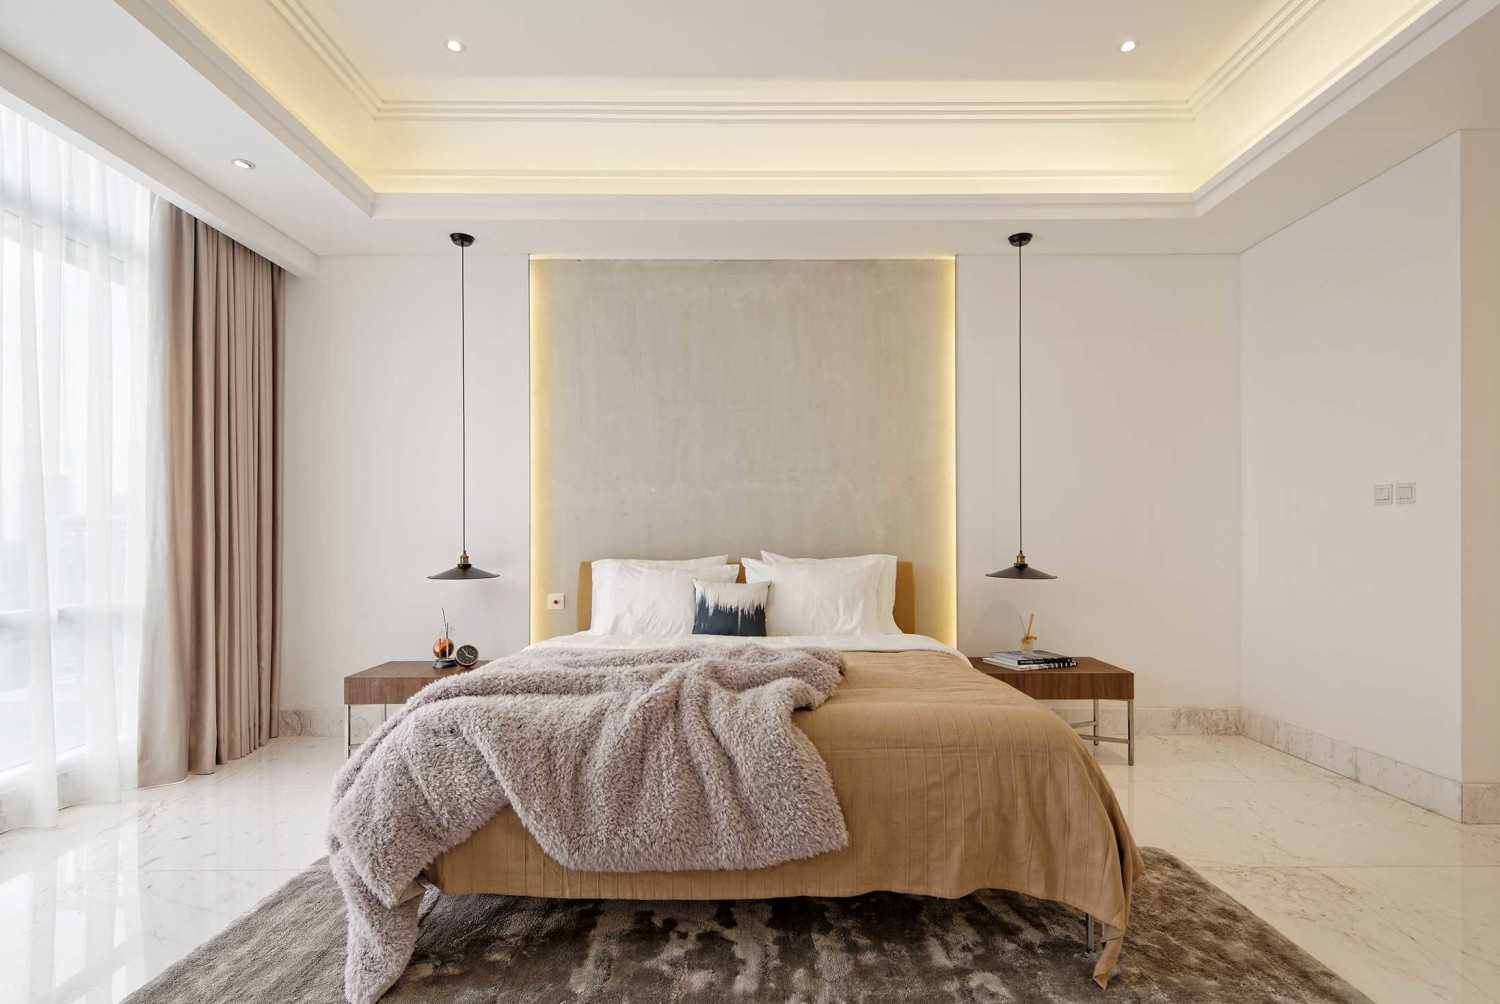 Sontani Partners 11A Residence South Jakarta, Indonesia South Jakarta, Indonesia Master Bedroom Kontemporer,industrial,wood,modern 21404